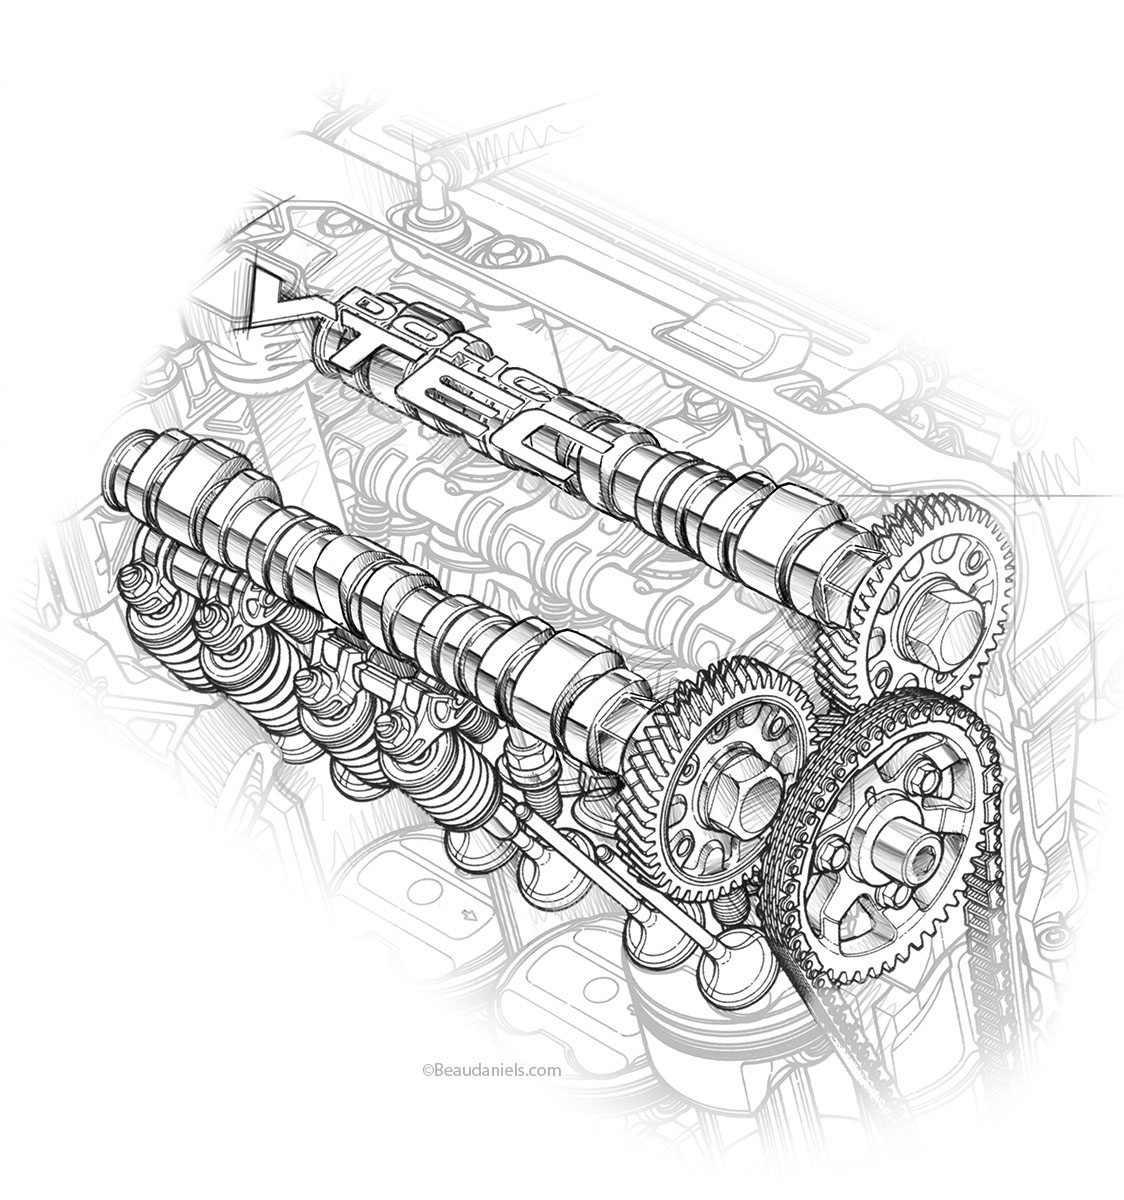 Generic Car Engines Portfolio 2 On Behance